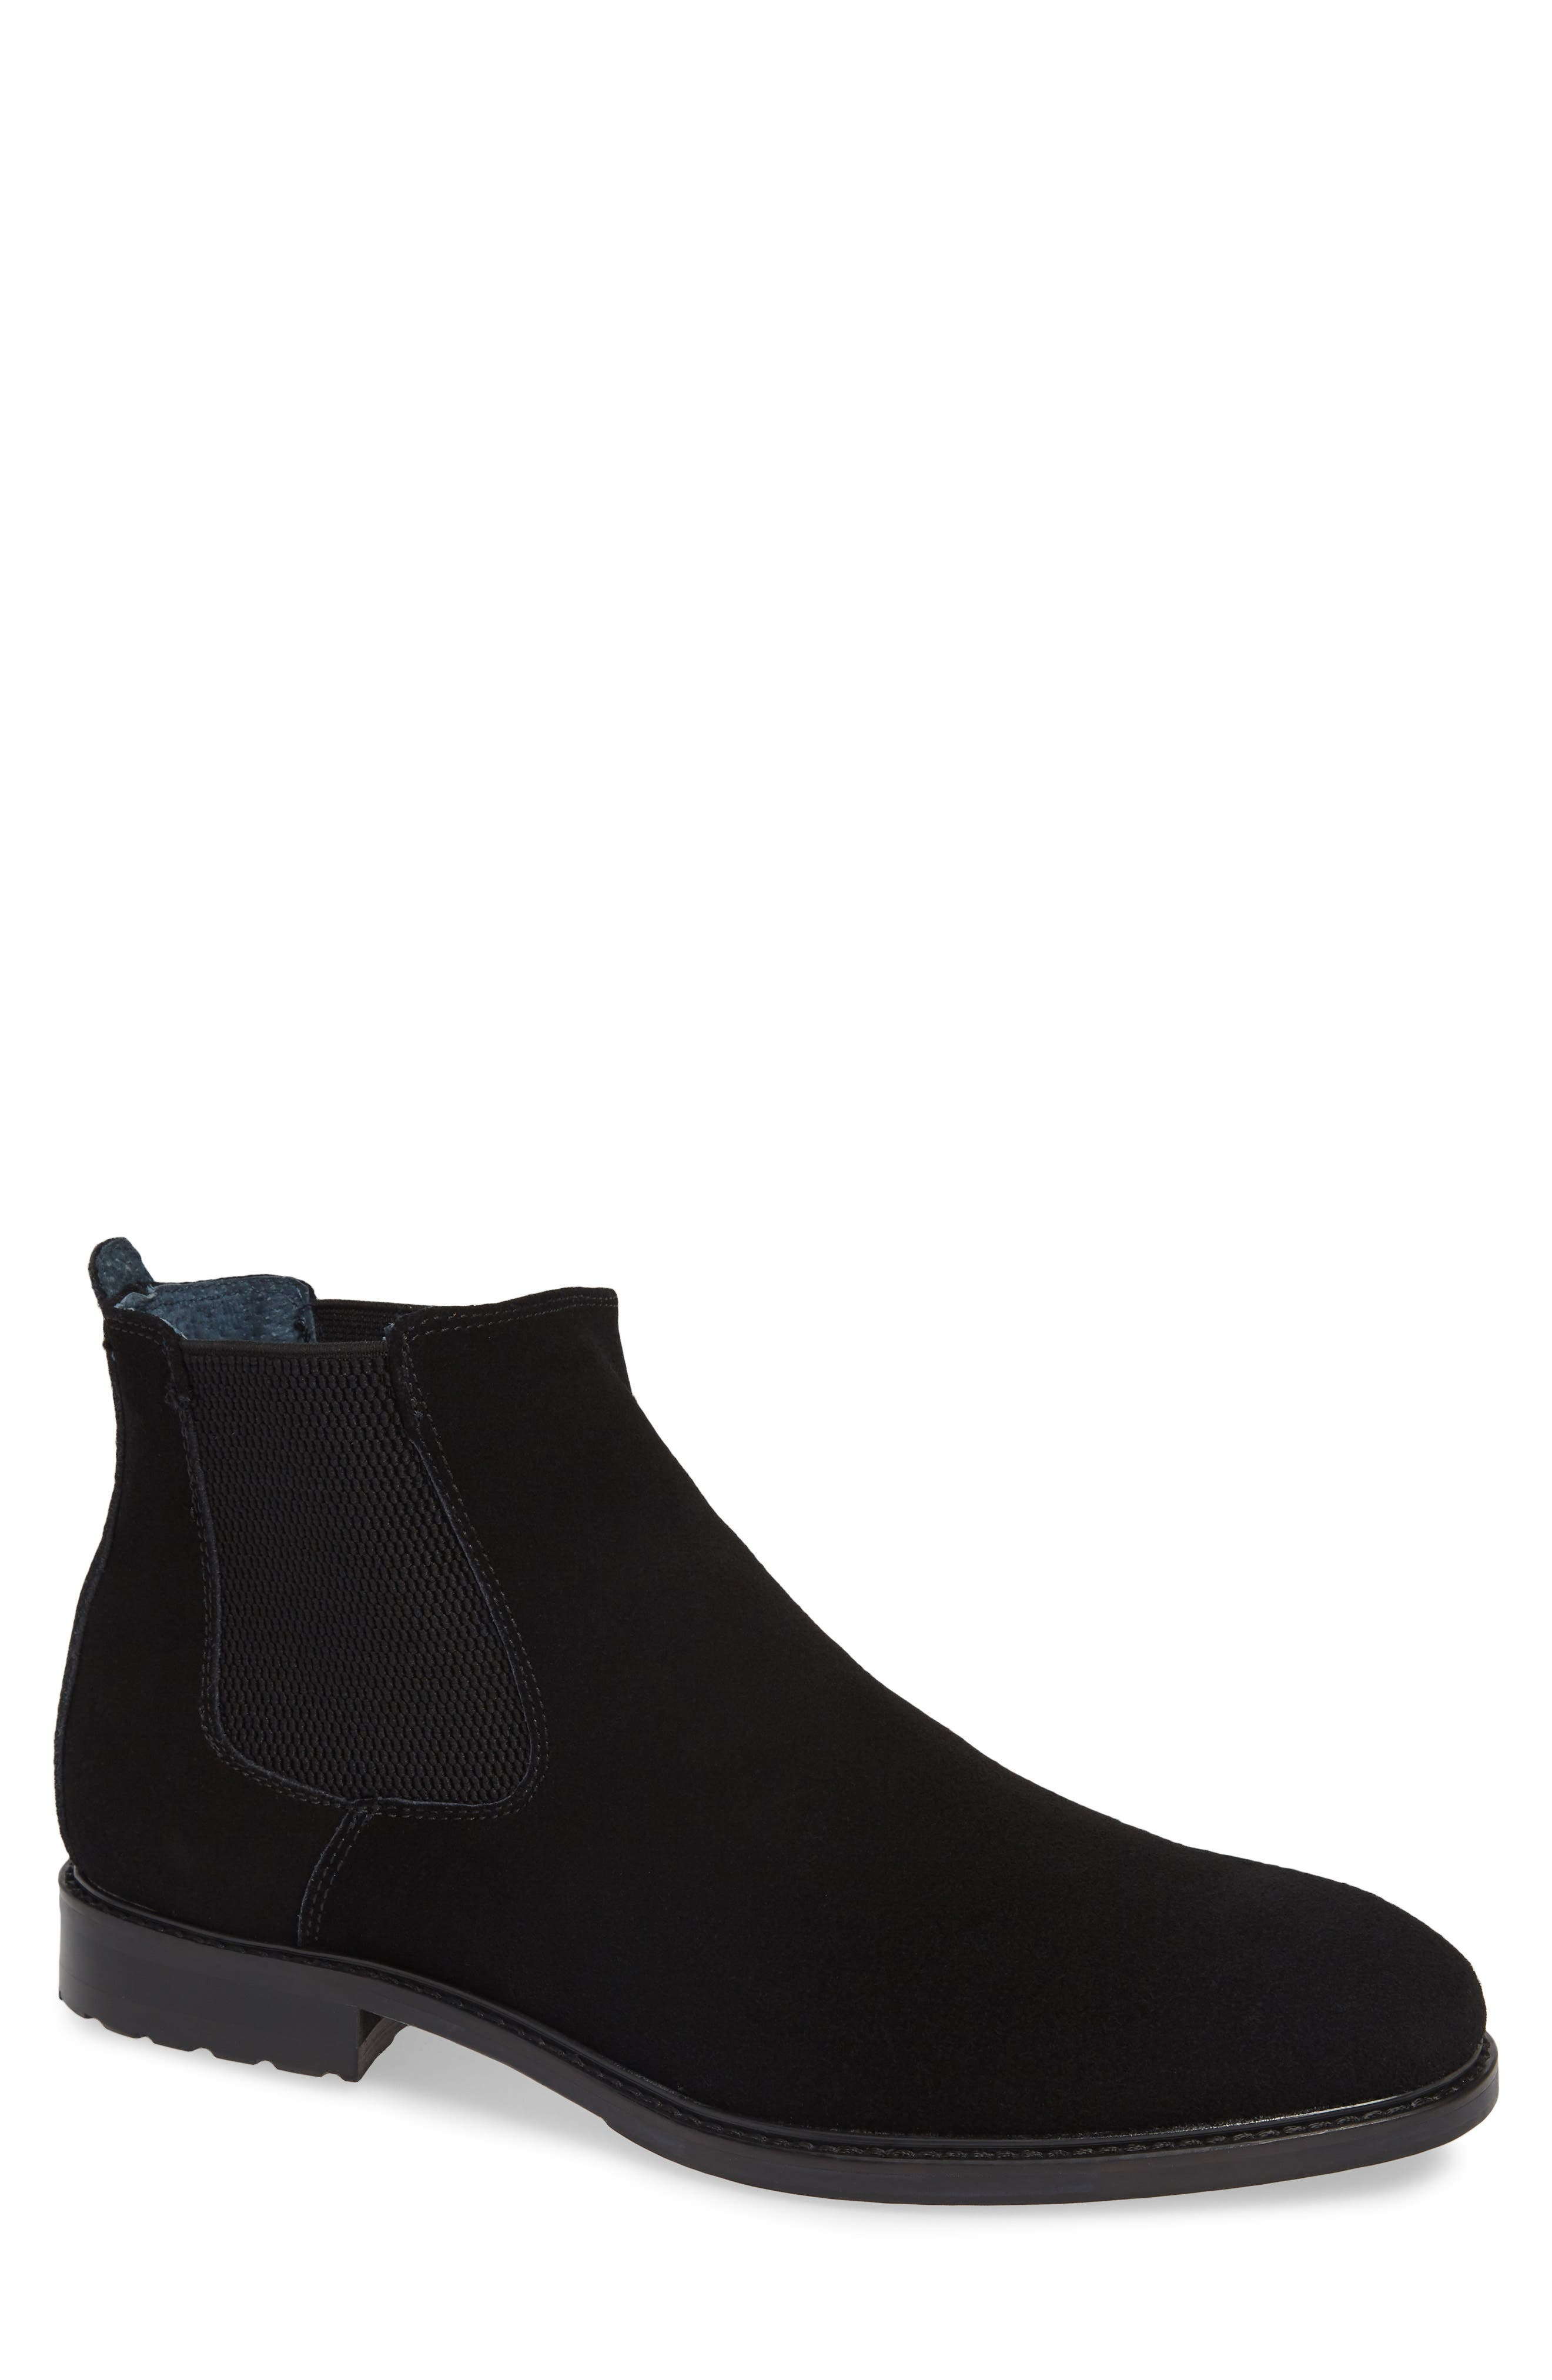 JUMP Steyer Chelsea Boot, Main, color, 009